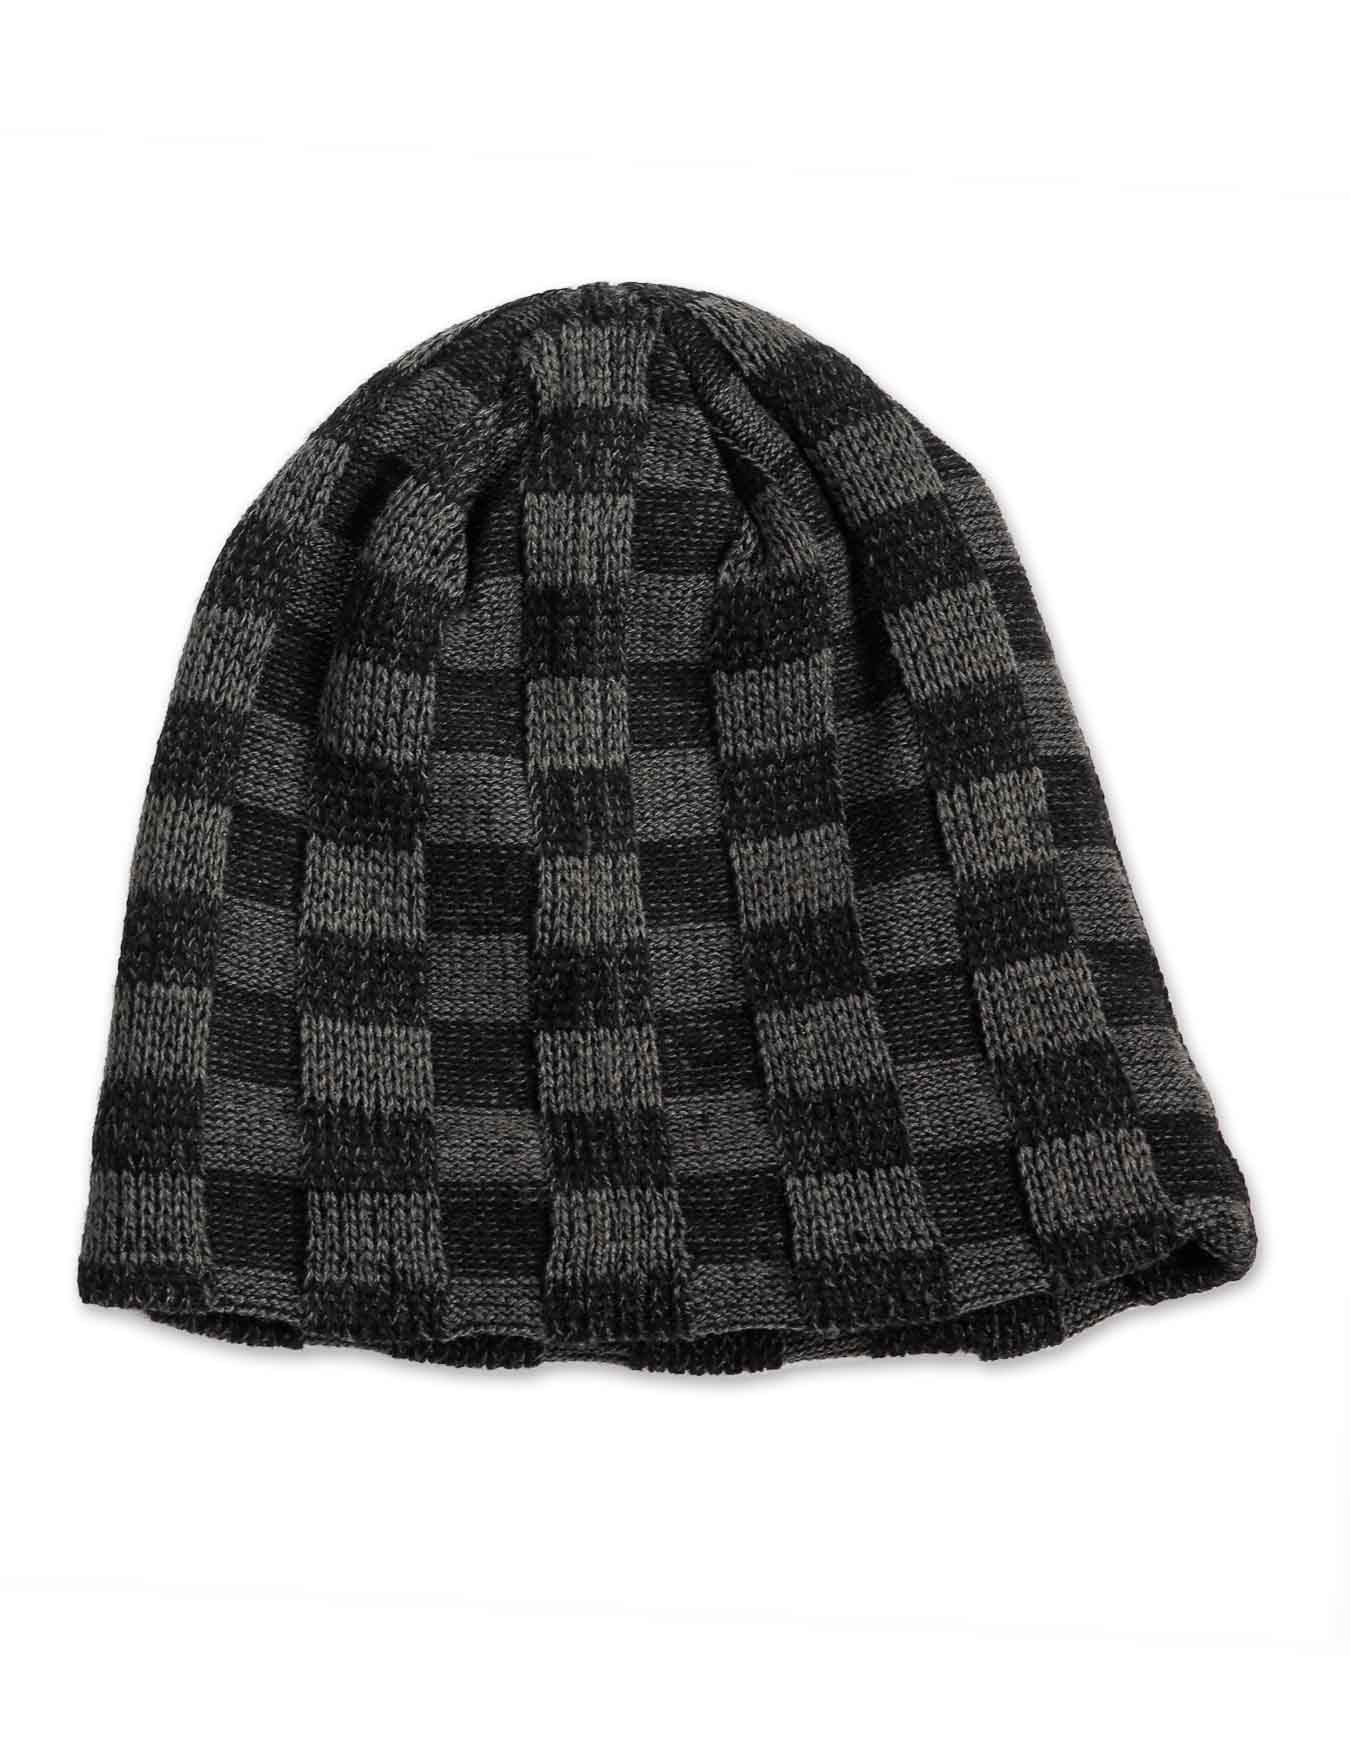 Σκούφος Grey-Black Check - FONEM - B.C.